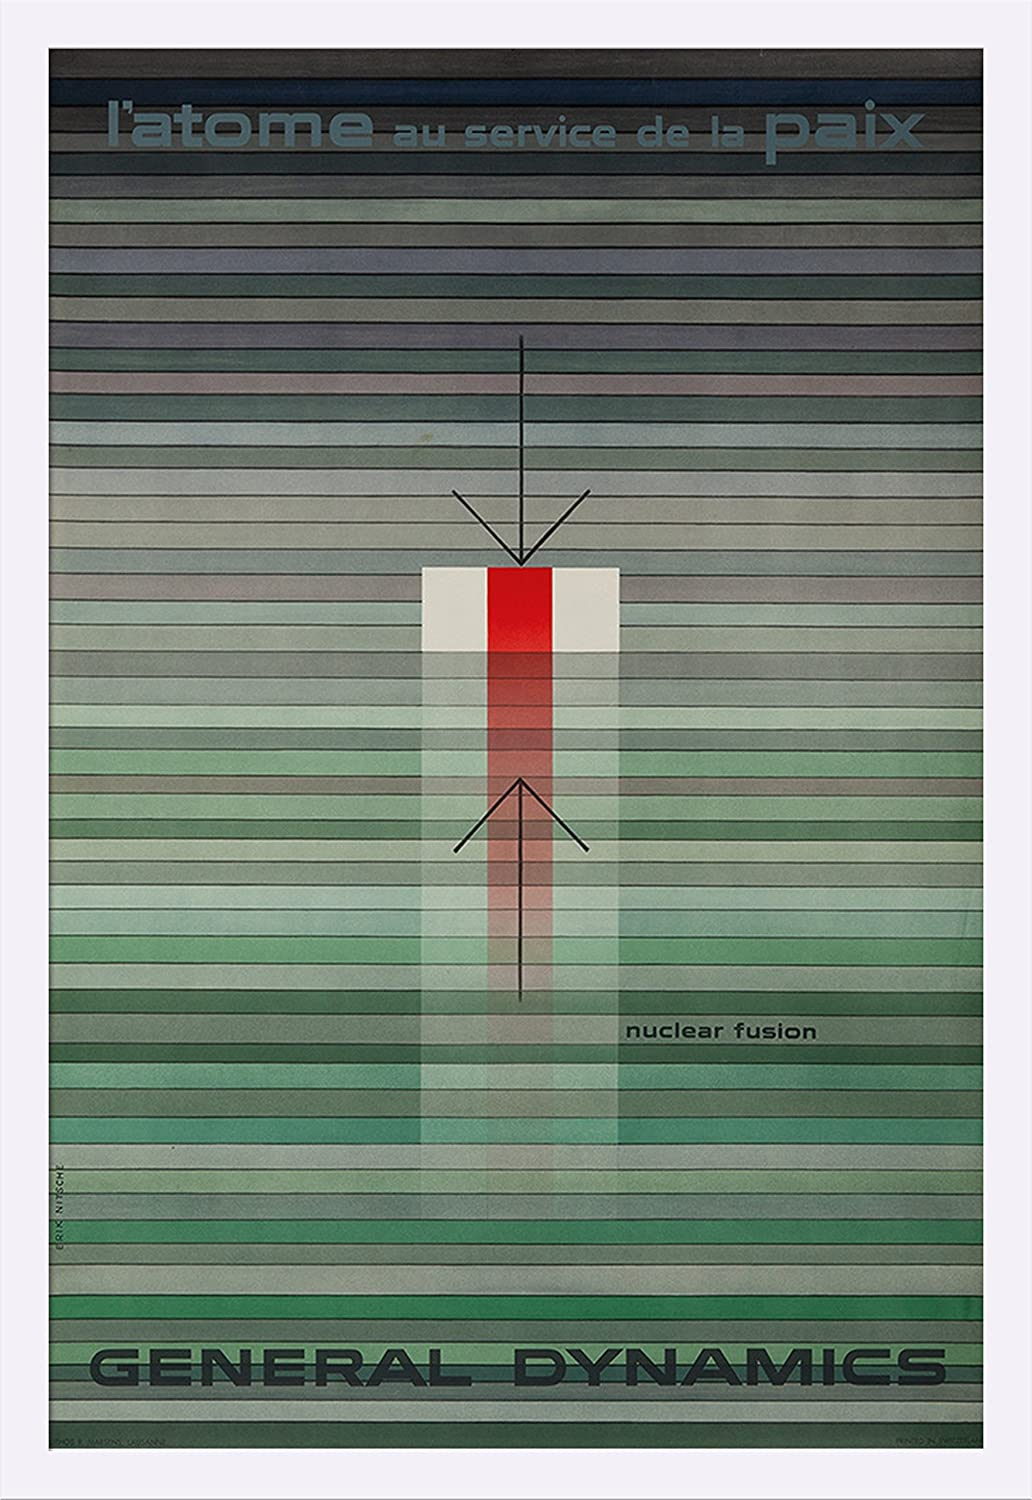 General Dynamics – Nuclear Fusionヴィンテージポスター(アーティスト: Nitsche )スイスC。1956 24 x 36 Framed Giclee (White) LANT-3P-FP-WHT-60425-24x36 24 x 36 Framed Giclee (White)  B019ID820Y